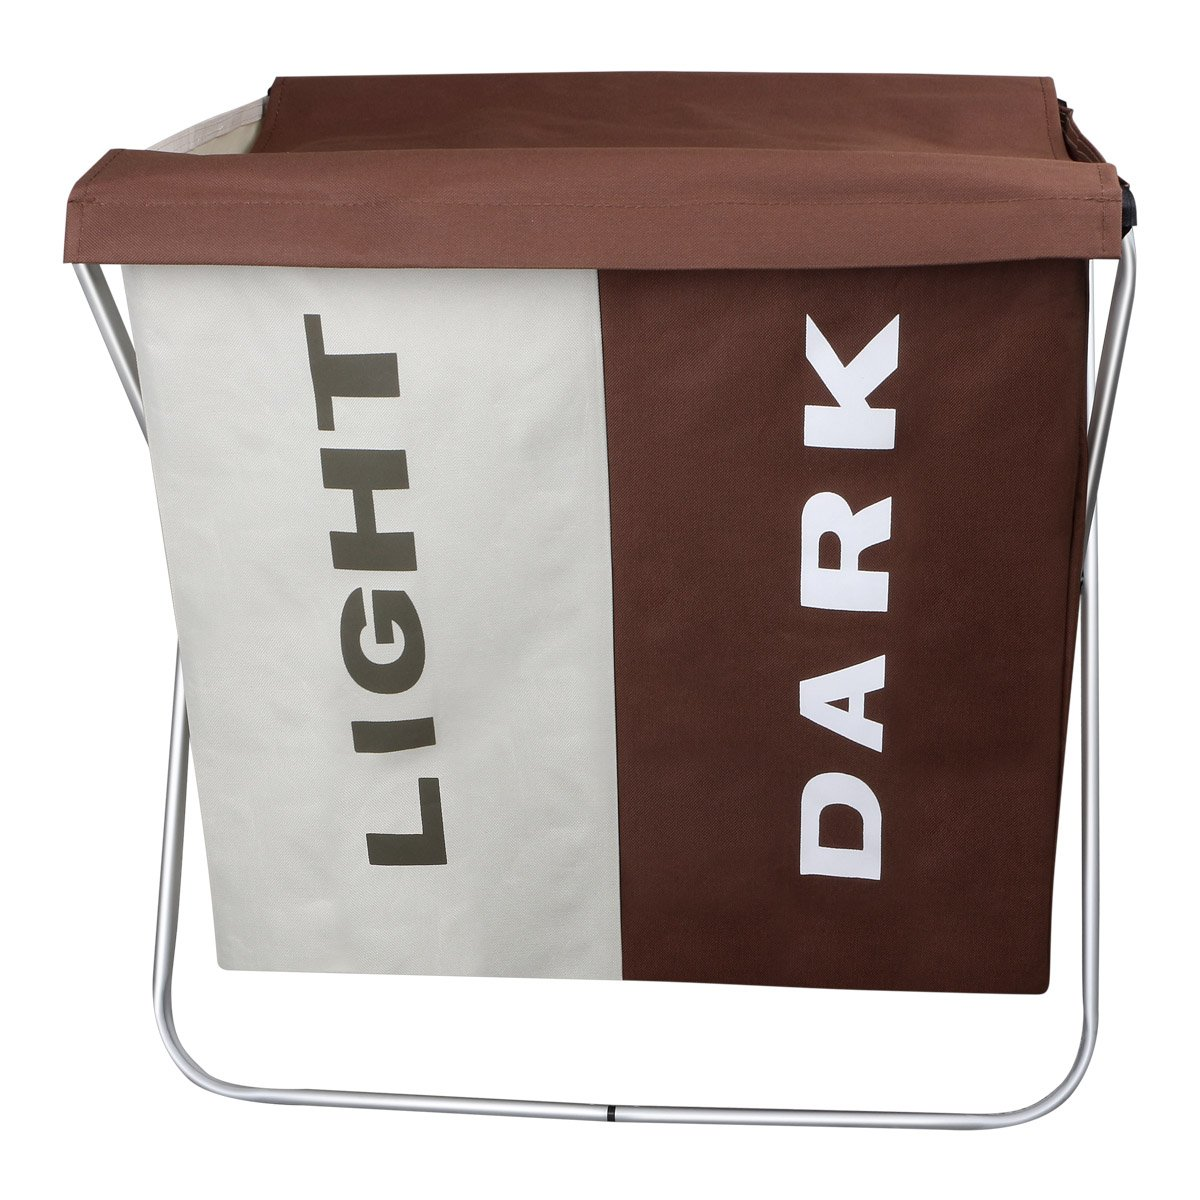 WIFUME Light and Dark Home Double Laundry Basket with Lid 22.8